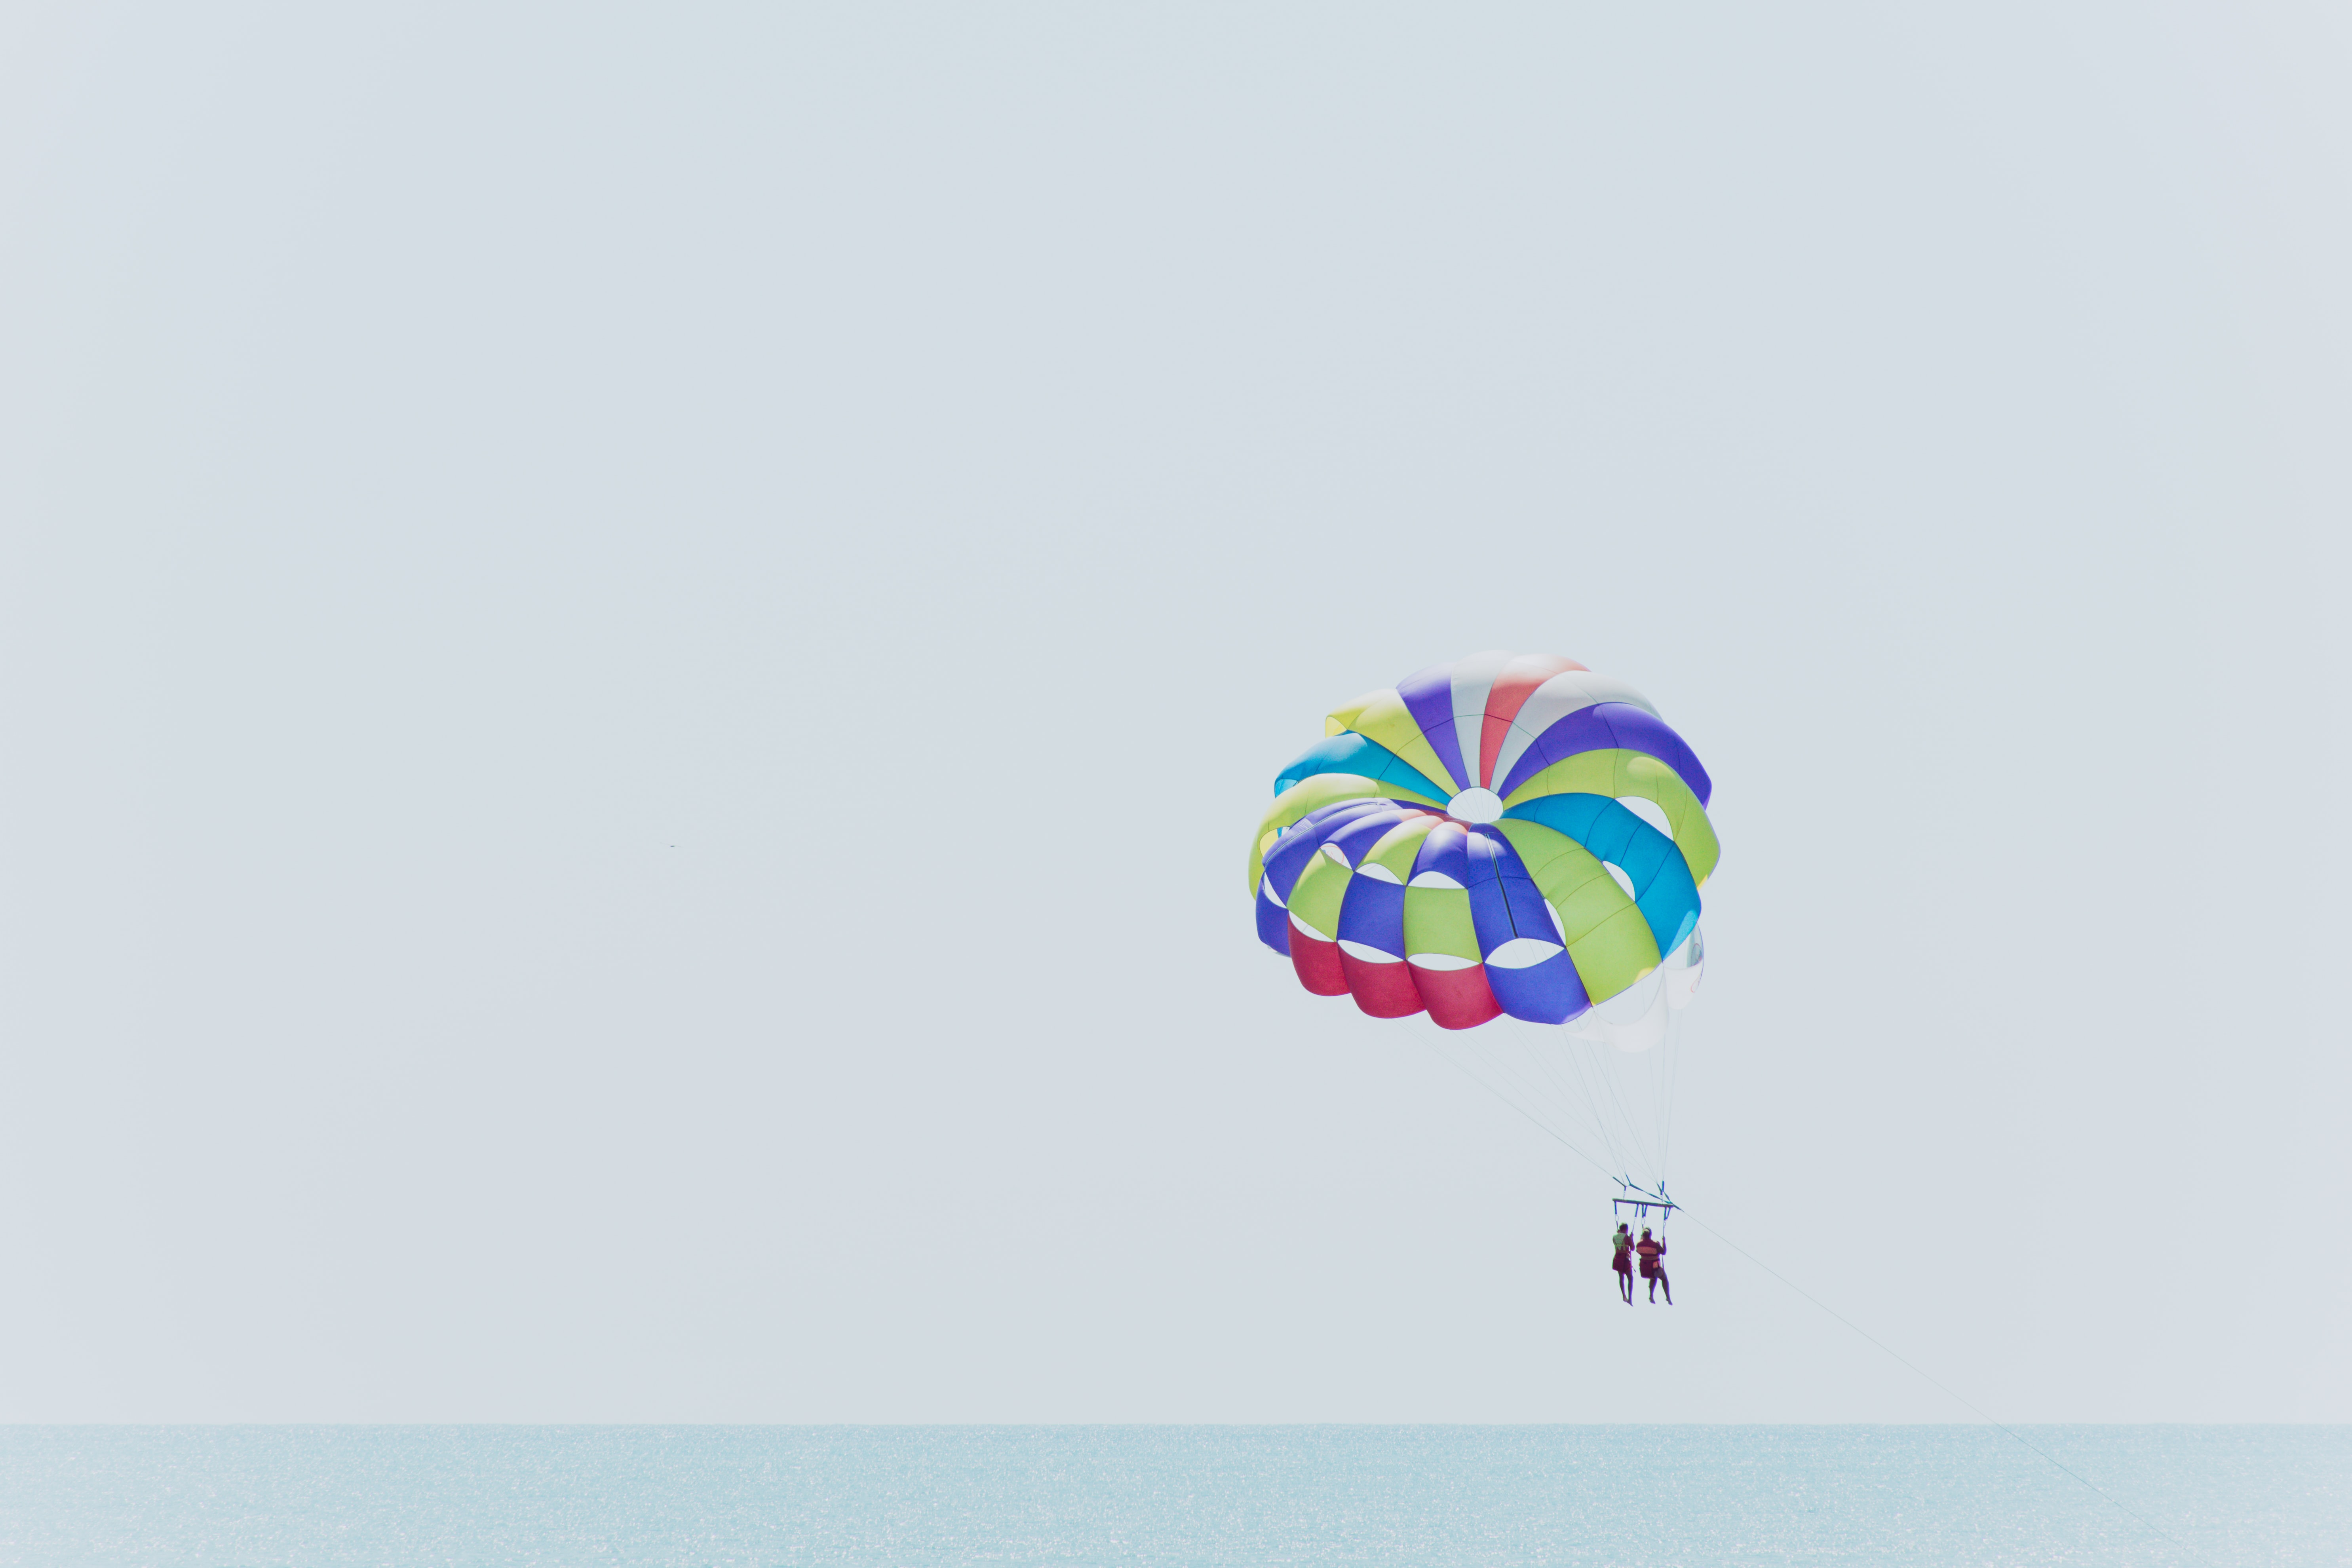 two people paragliding near ocean